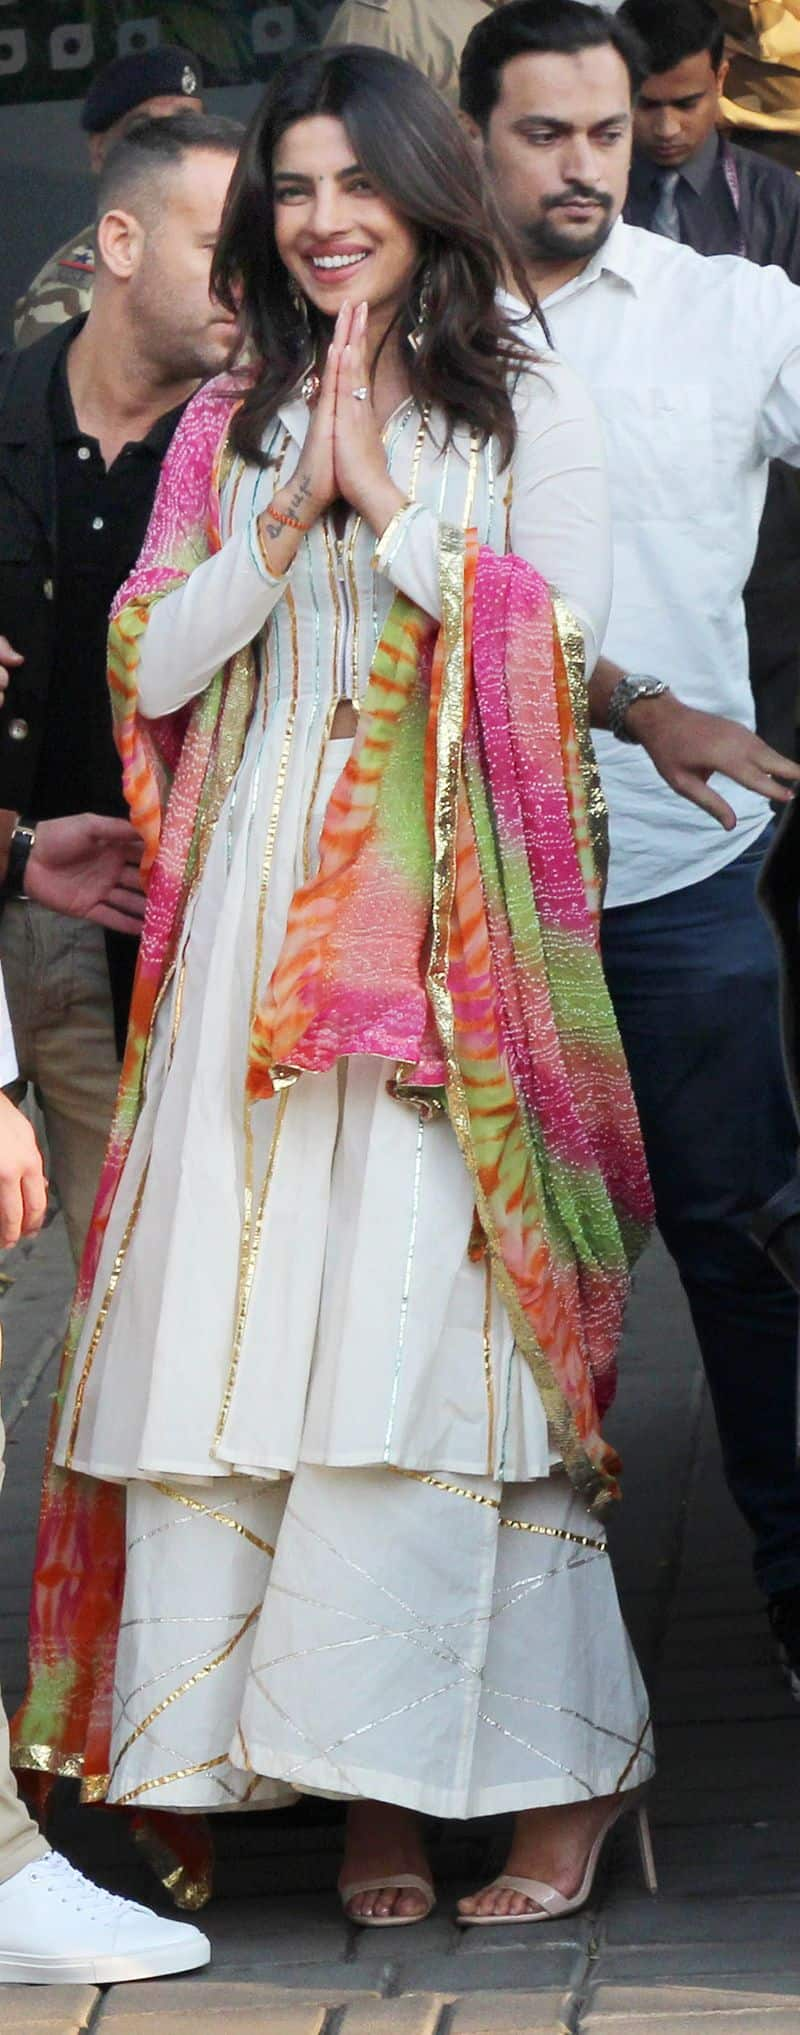 Bride-to-be spotted leaving for Jodhpur at the Mumbai airport as the wedding festivities kick off today.